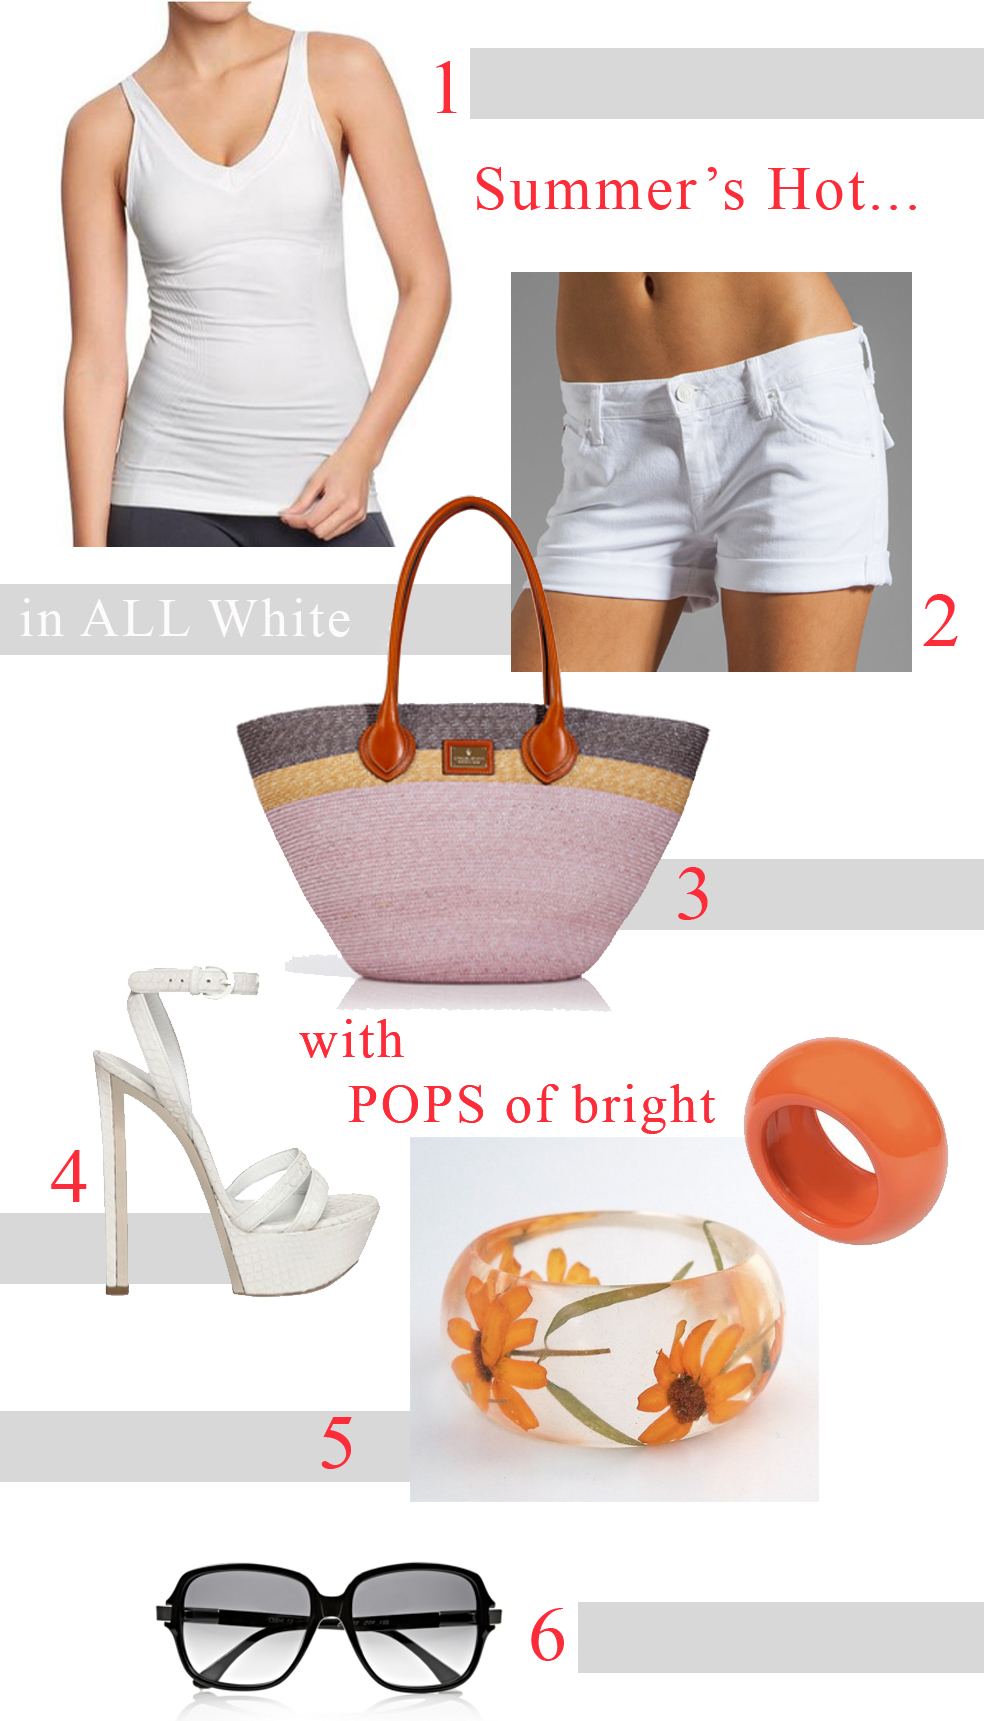 1. white V neck tank top  2. White cuffed hot shorts 3. Striped Beach Tote 4. White Platform Sandals 5. Orange flowers bangle bracelet  6. Black oversized Sunnies